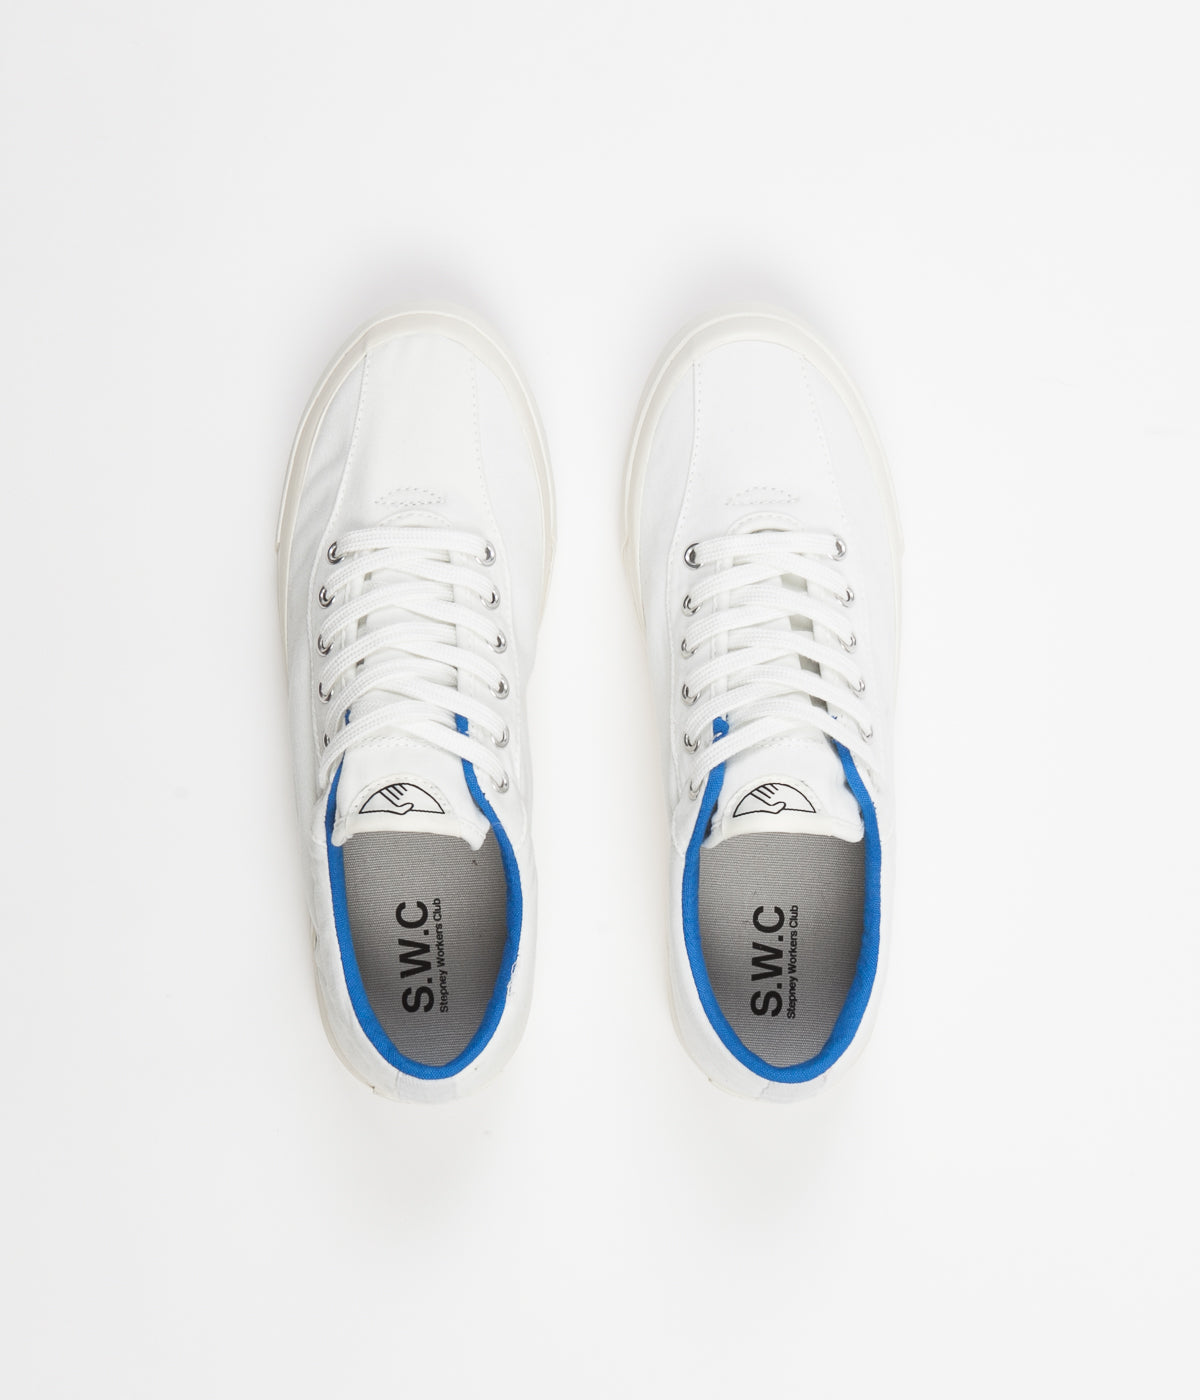 Stepney Workers Club Dellow Canvas Shoes - White / Blue